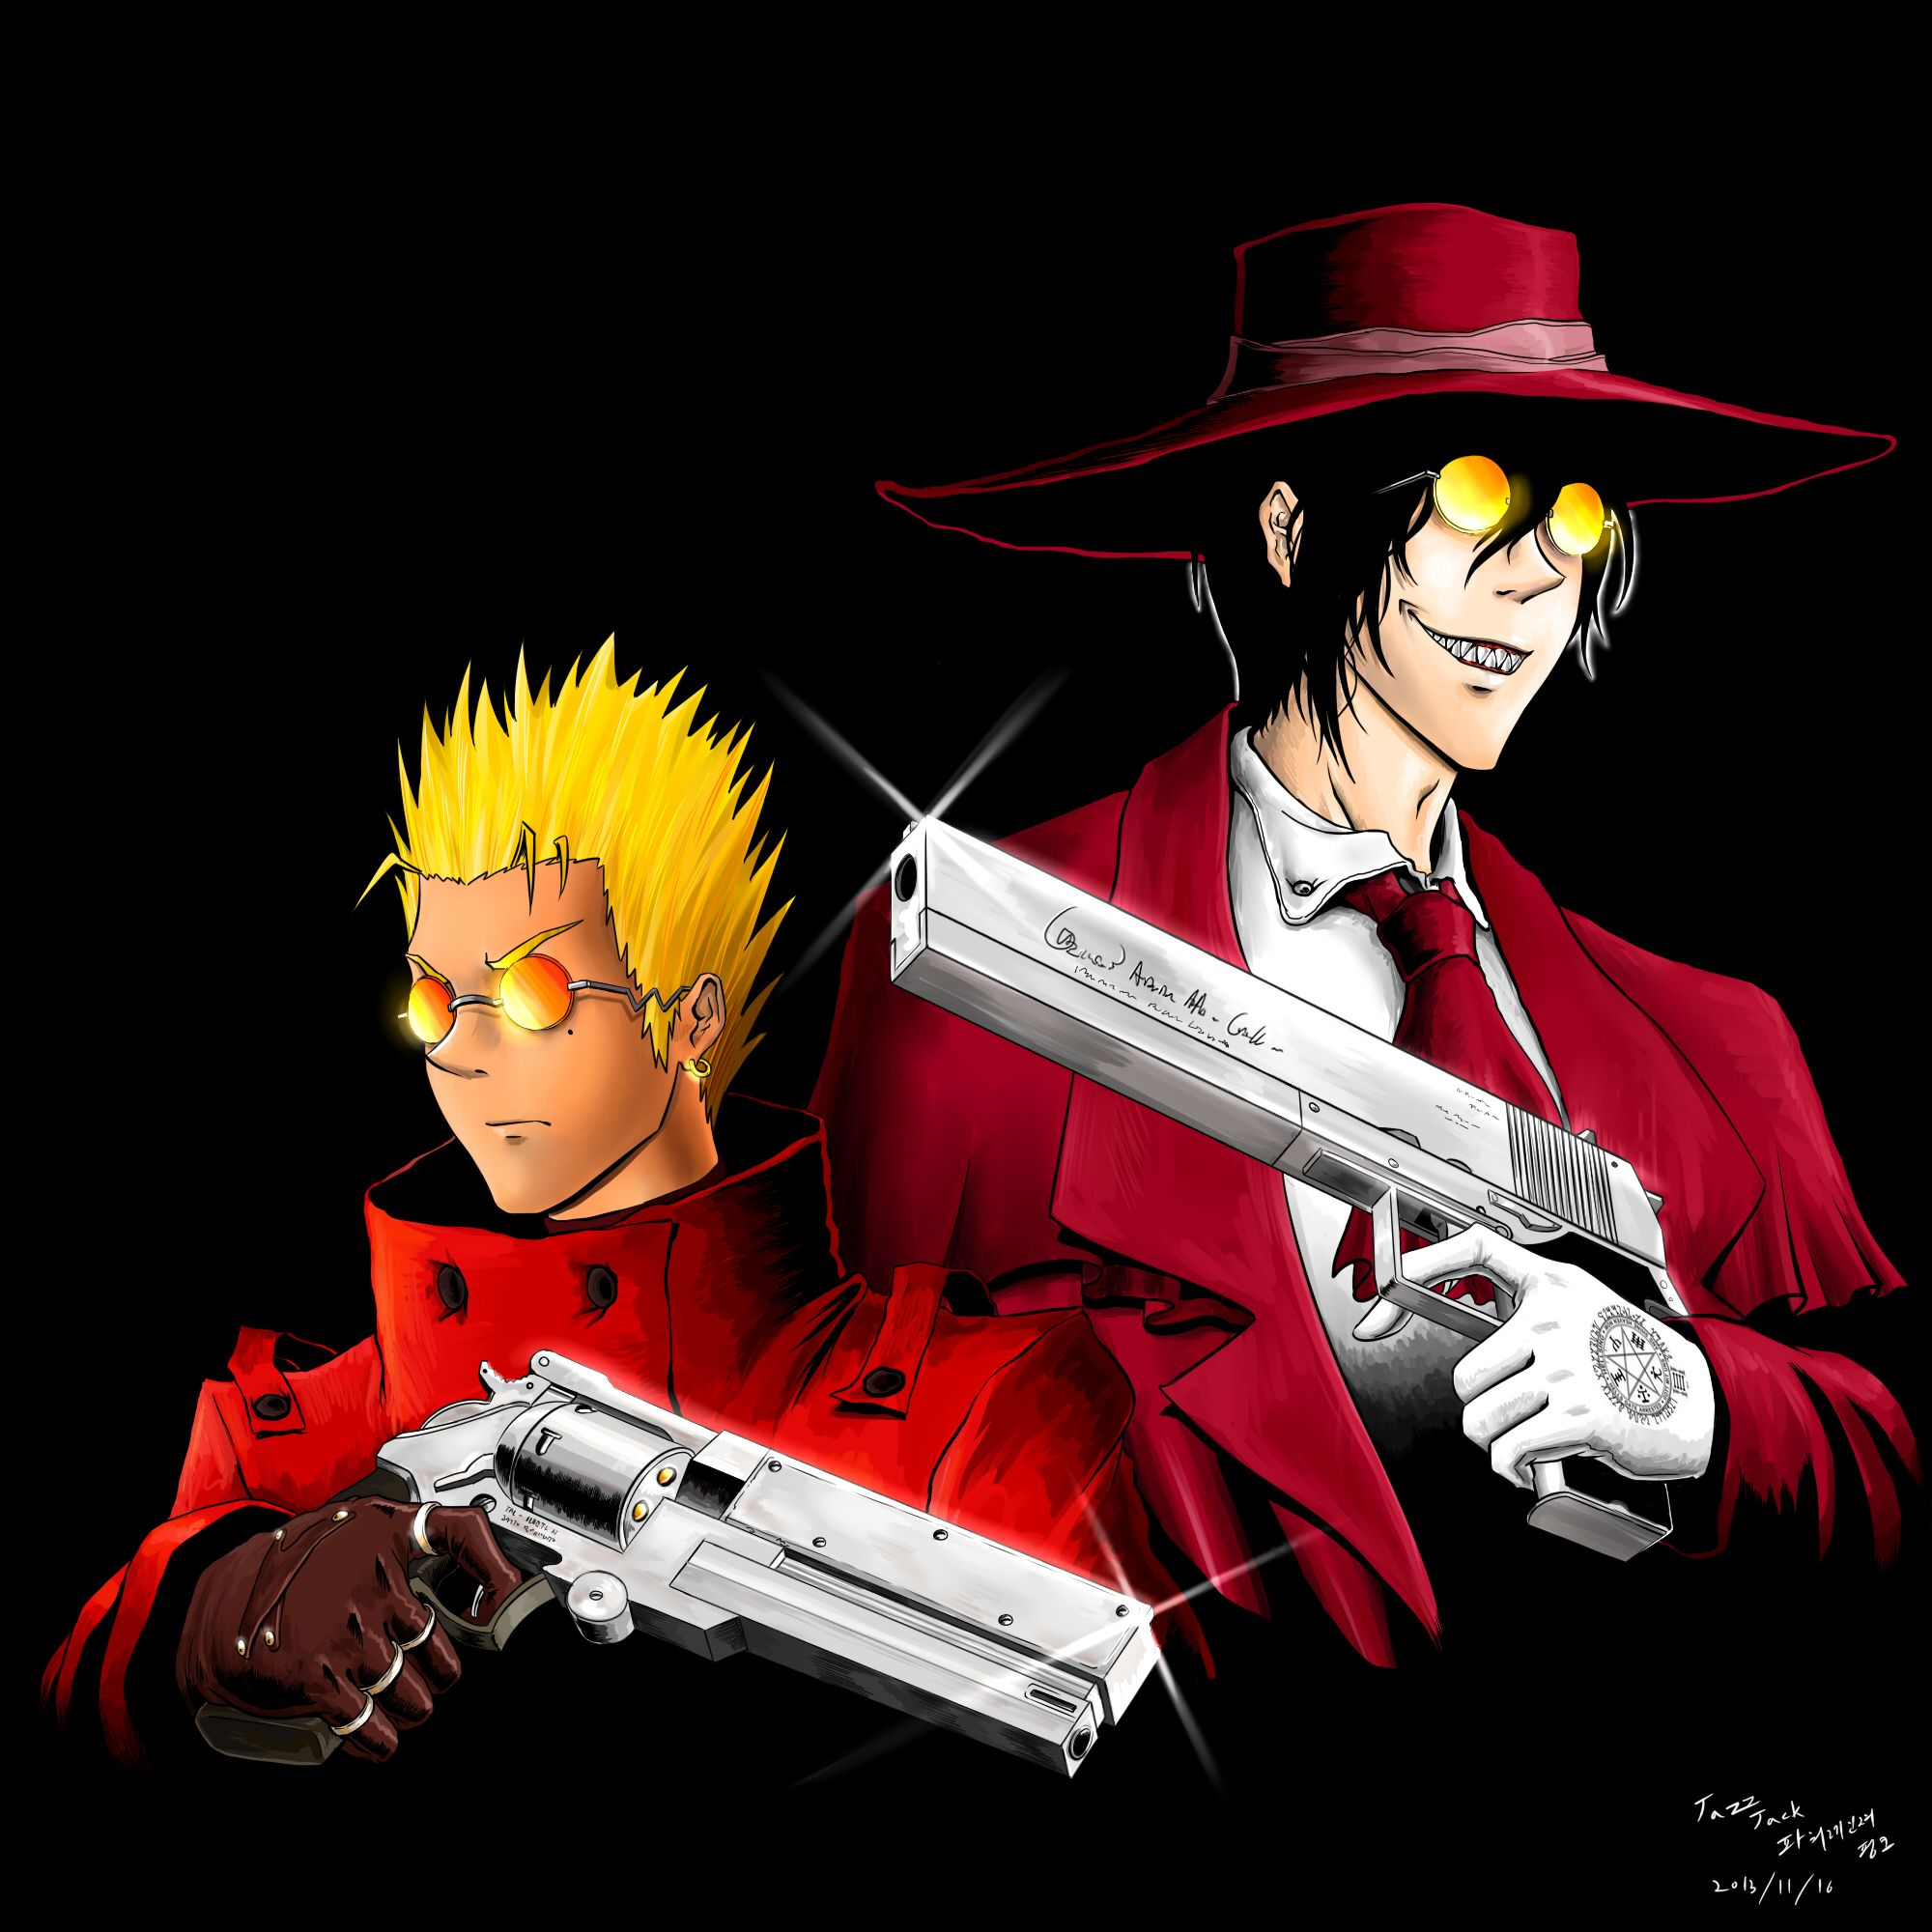 trigun animebox japanese anime - photo #37